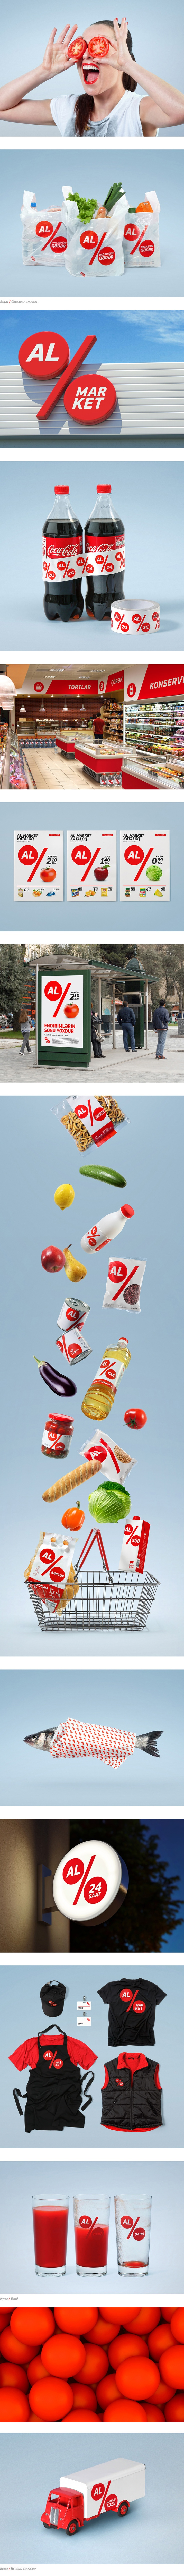 Here's more Al Market Hector #identity #packaging #branding #marketing PD